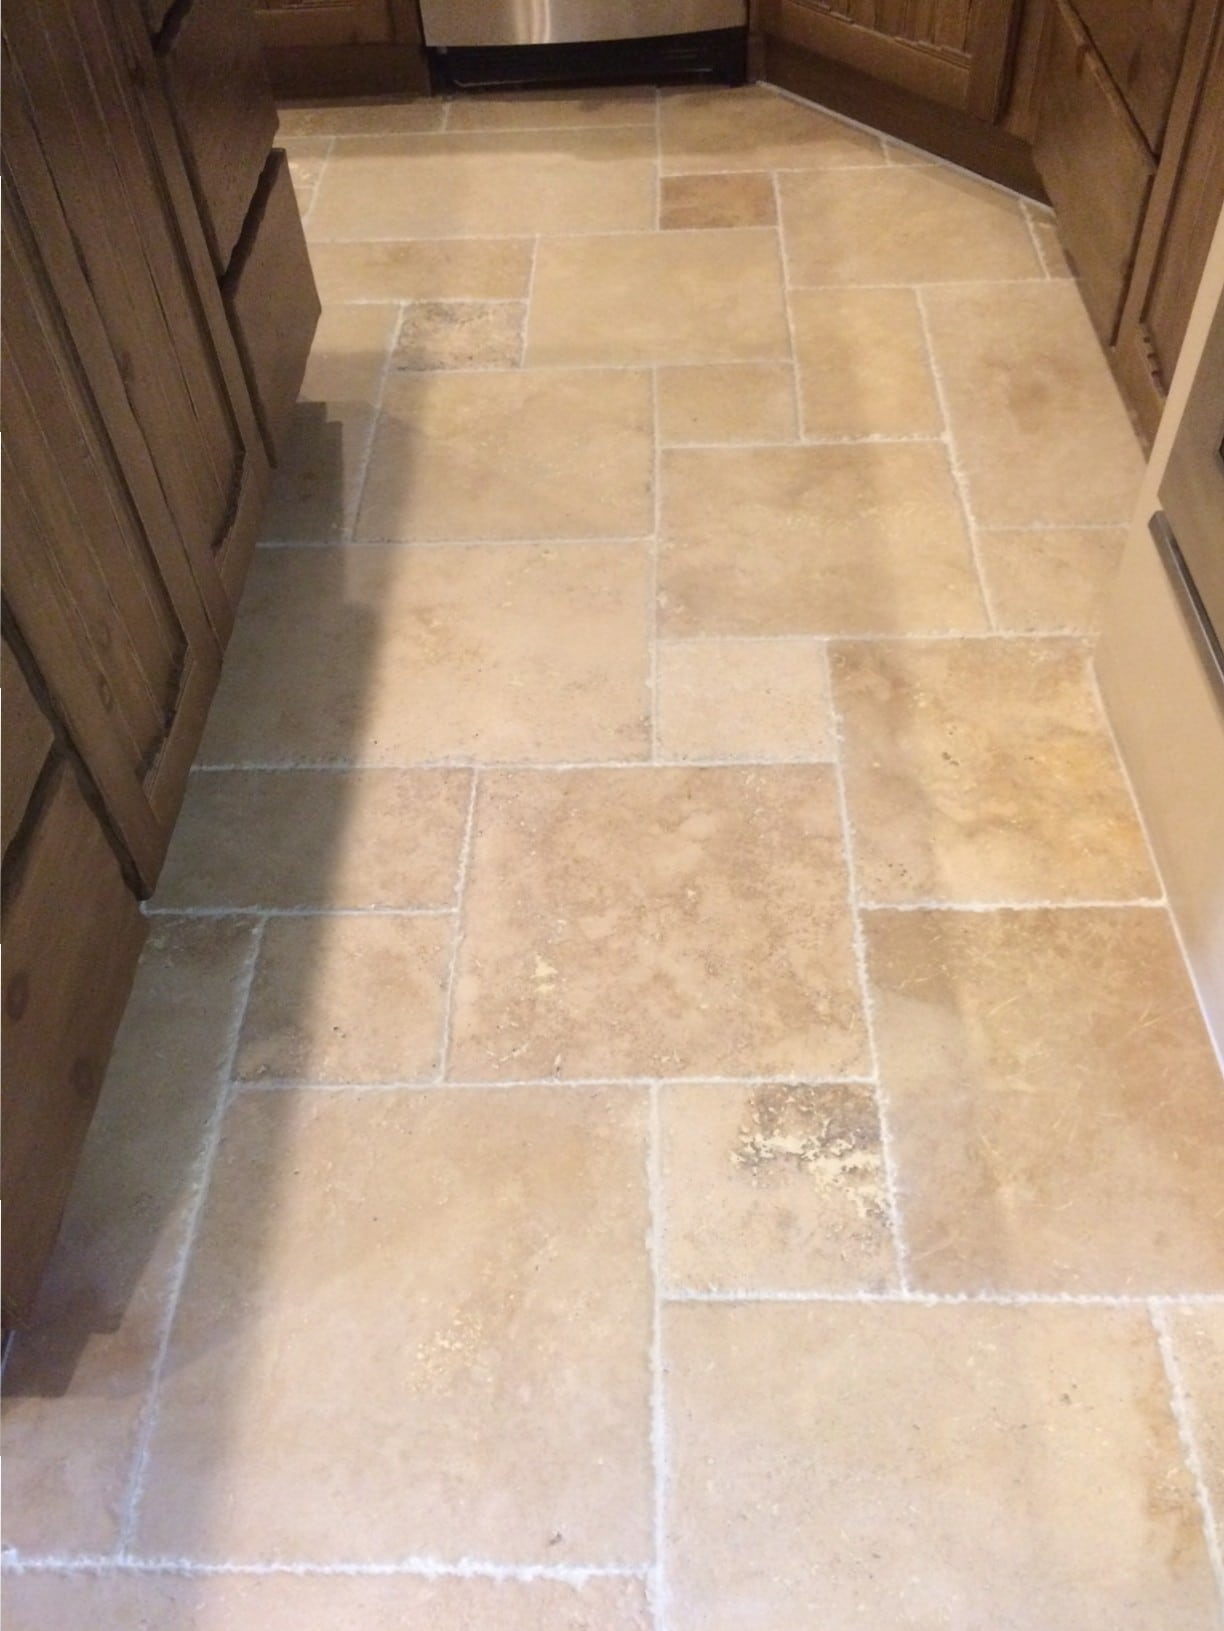 Travertine - After Tile Floor Cleaning Services By Dan Milne